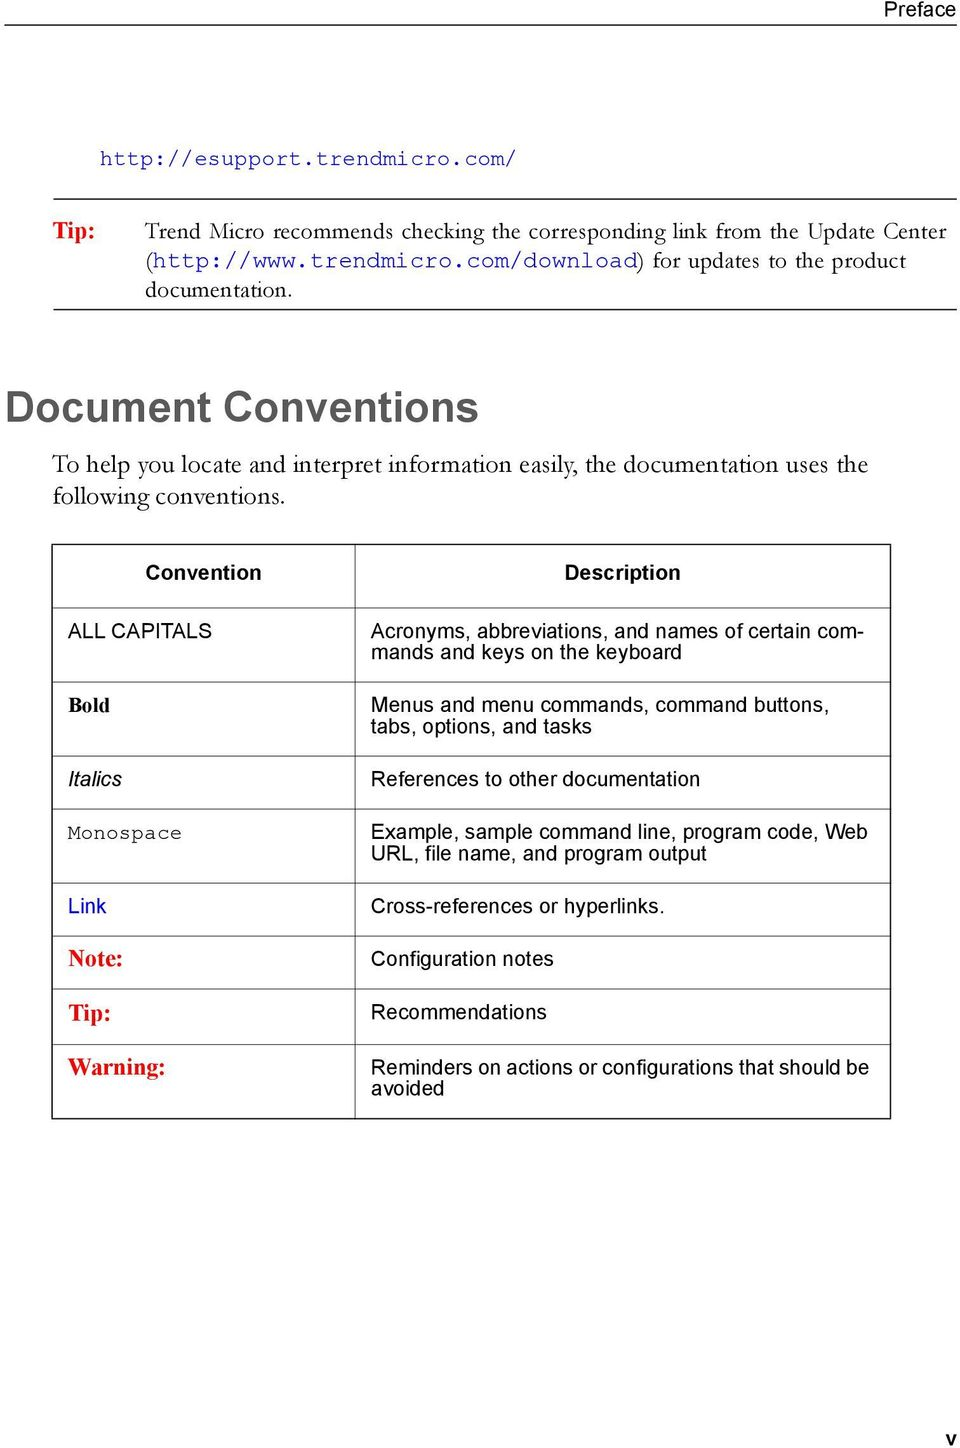 Convention ALL CAPITALS Bold Italics Monospace Link Tip: Warning: Description Acronyms, abbreviations, and names of certain commands and keys on the keyboard Menus and menu commands, command buttons,